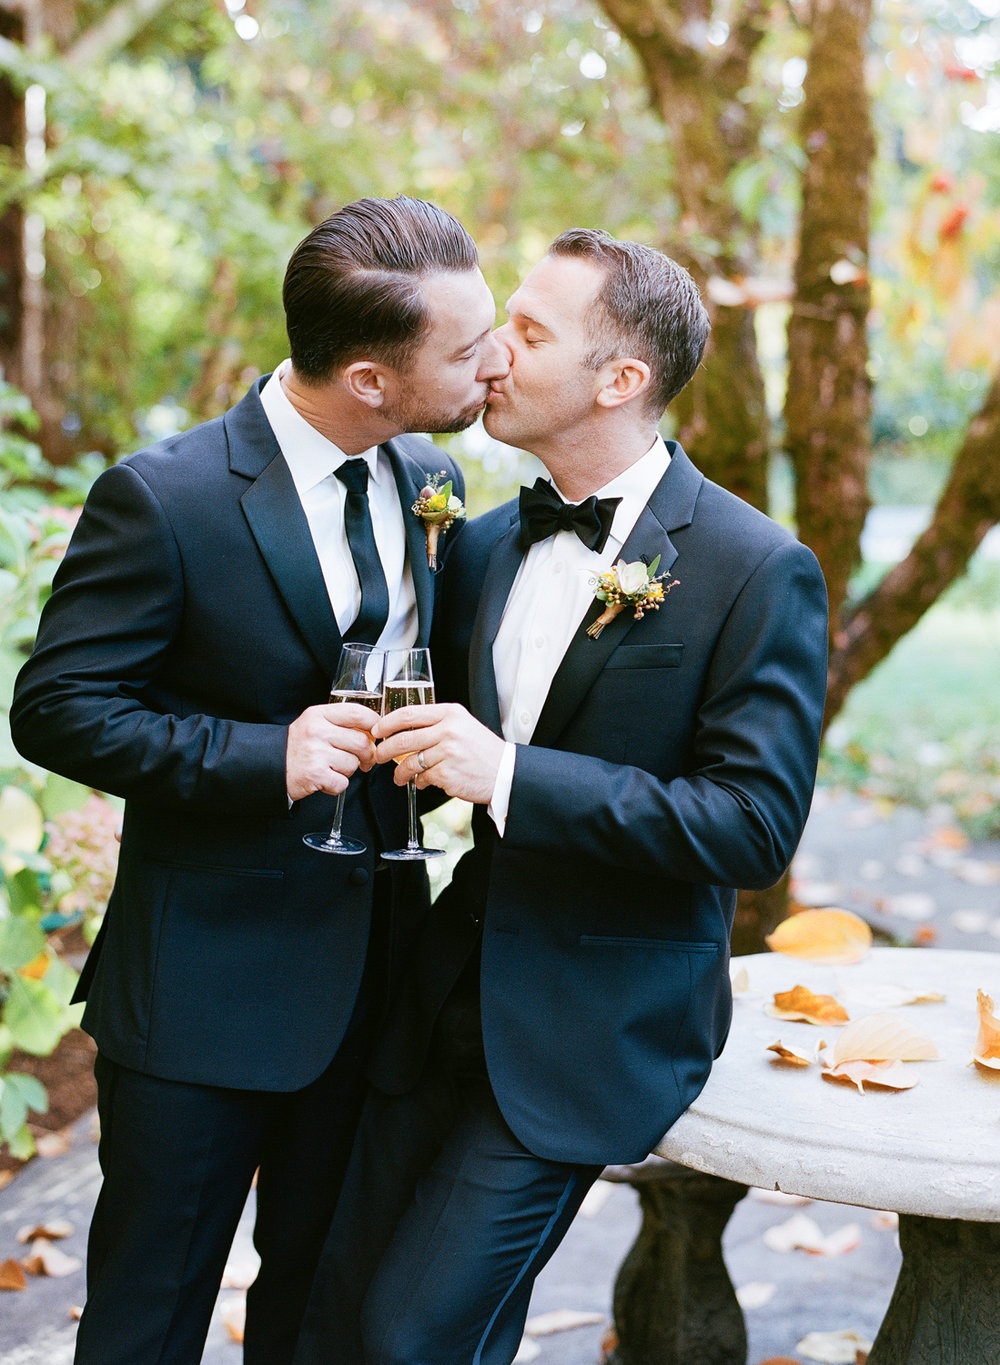 Grooms share a kiss and toast champagne after their wedding ceremony in St. Helena; Sylvie Gil Photography